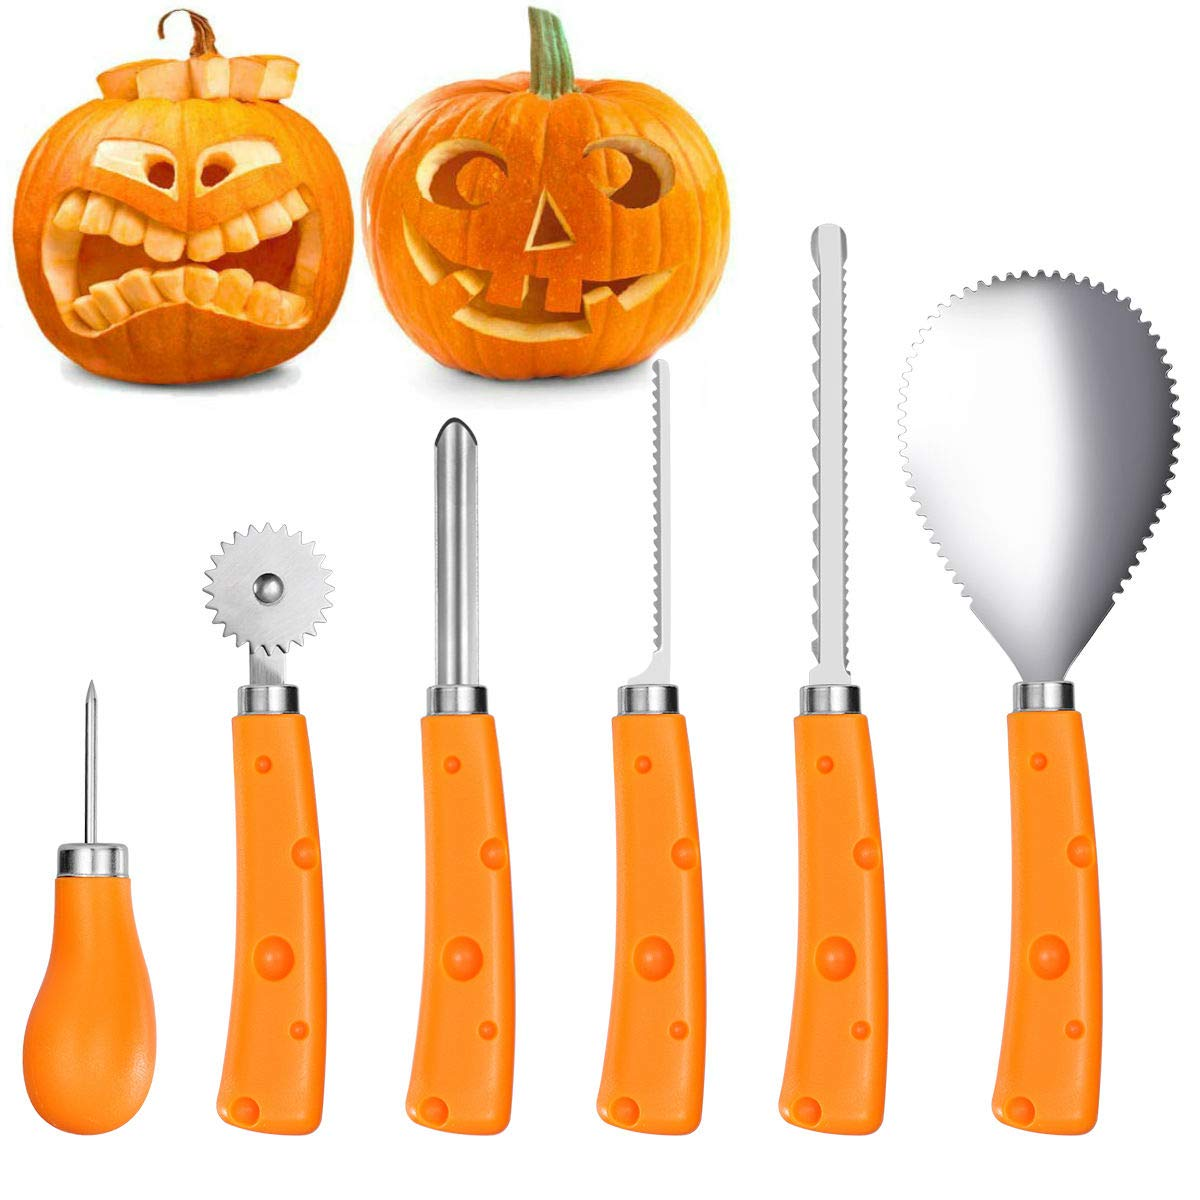 IBASETOY Pumpkin Carving Tools Kit 6 Pieces, Sturdy Stainless Steel Halloween Pumpkin Carving Set - Easily Carve for Family Pumpkin Decorations by Creative Jack-O-Lantern Carving by iBaseToy